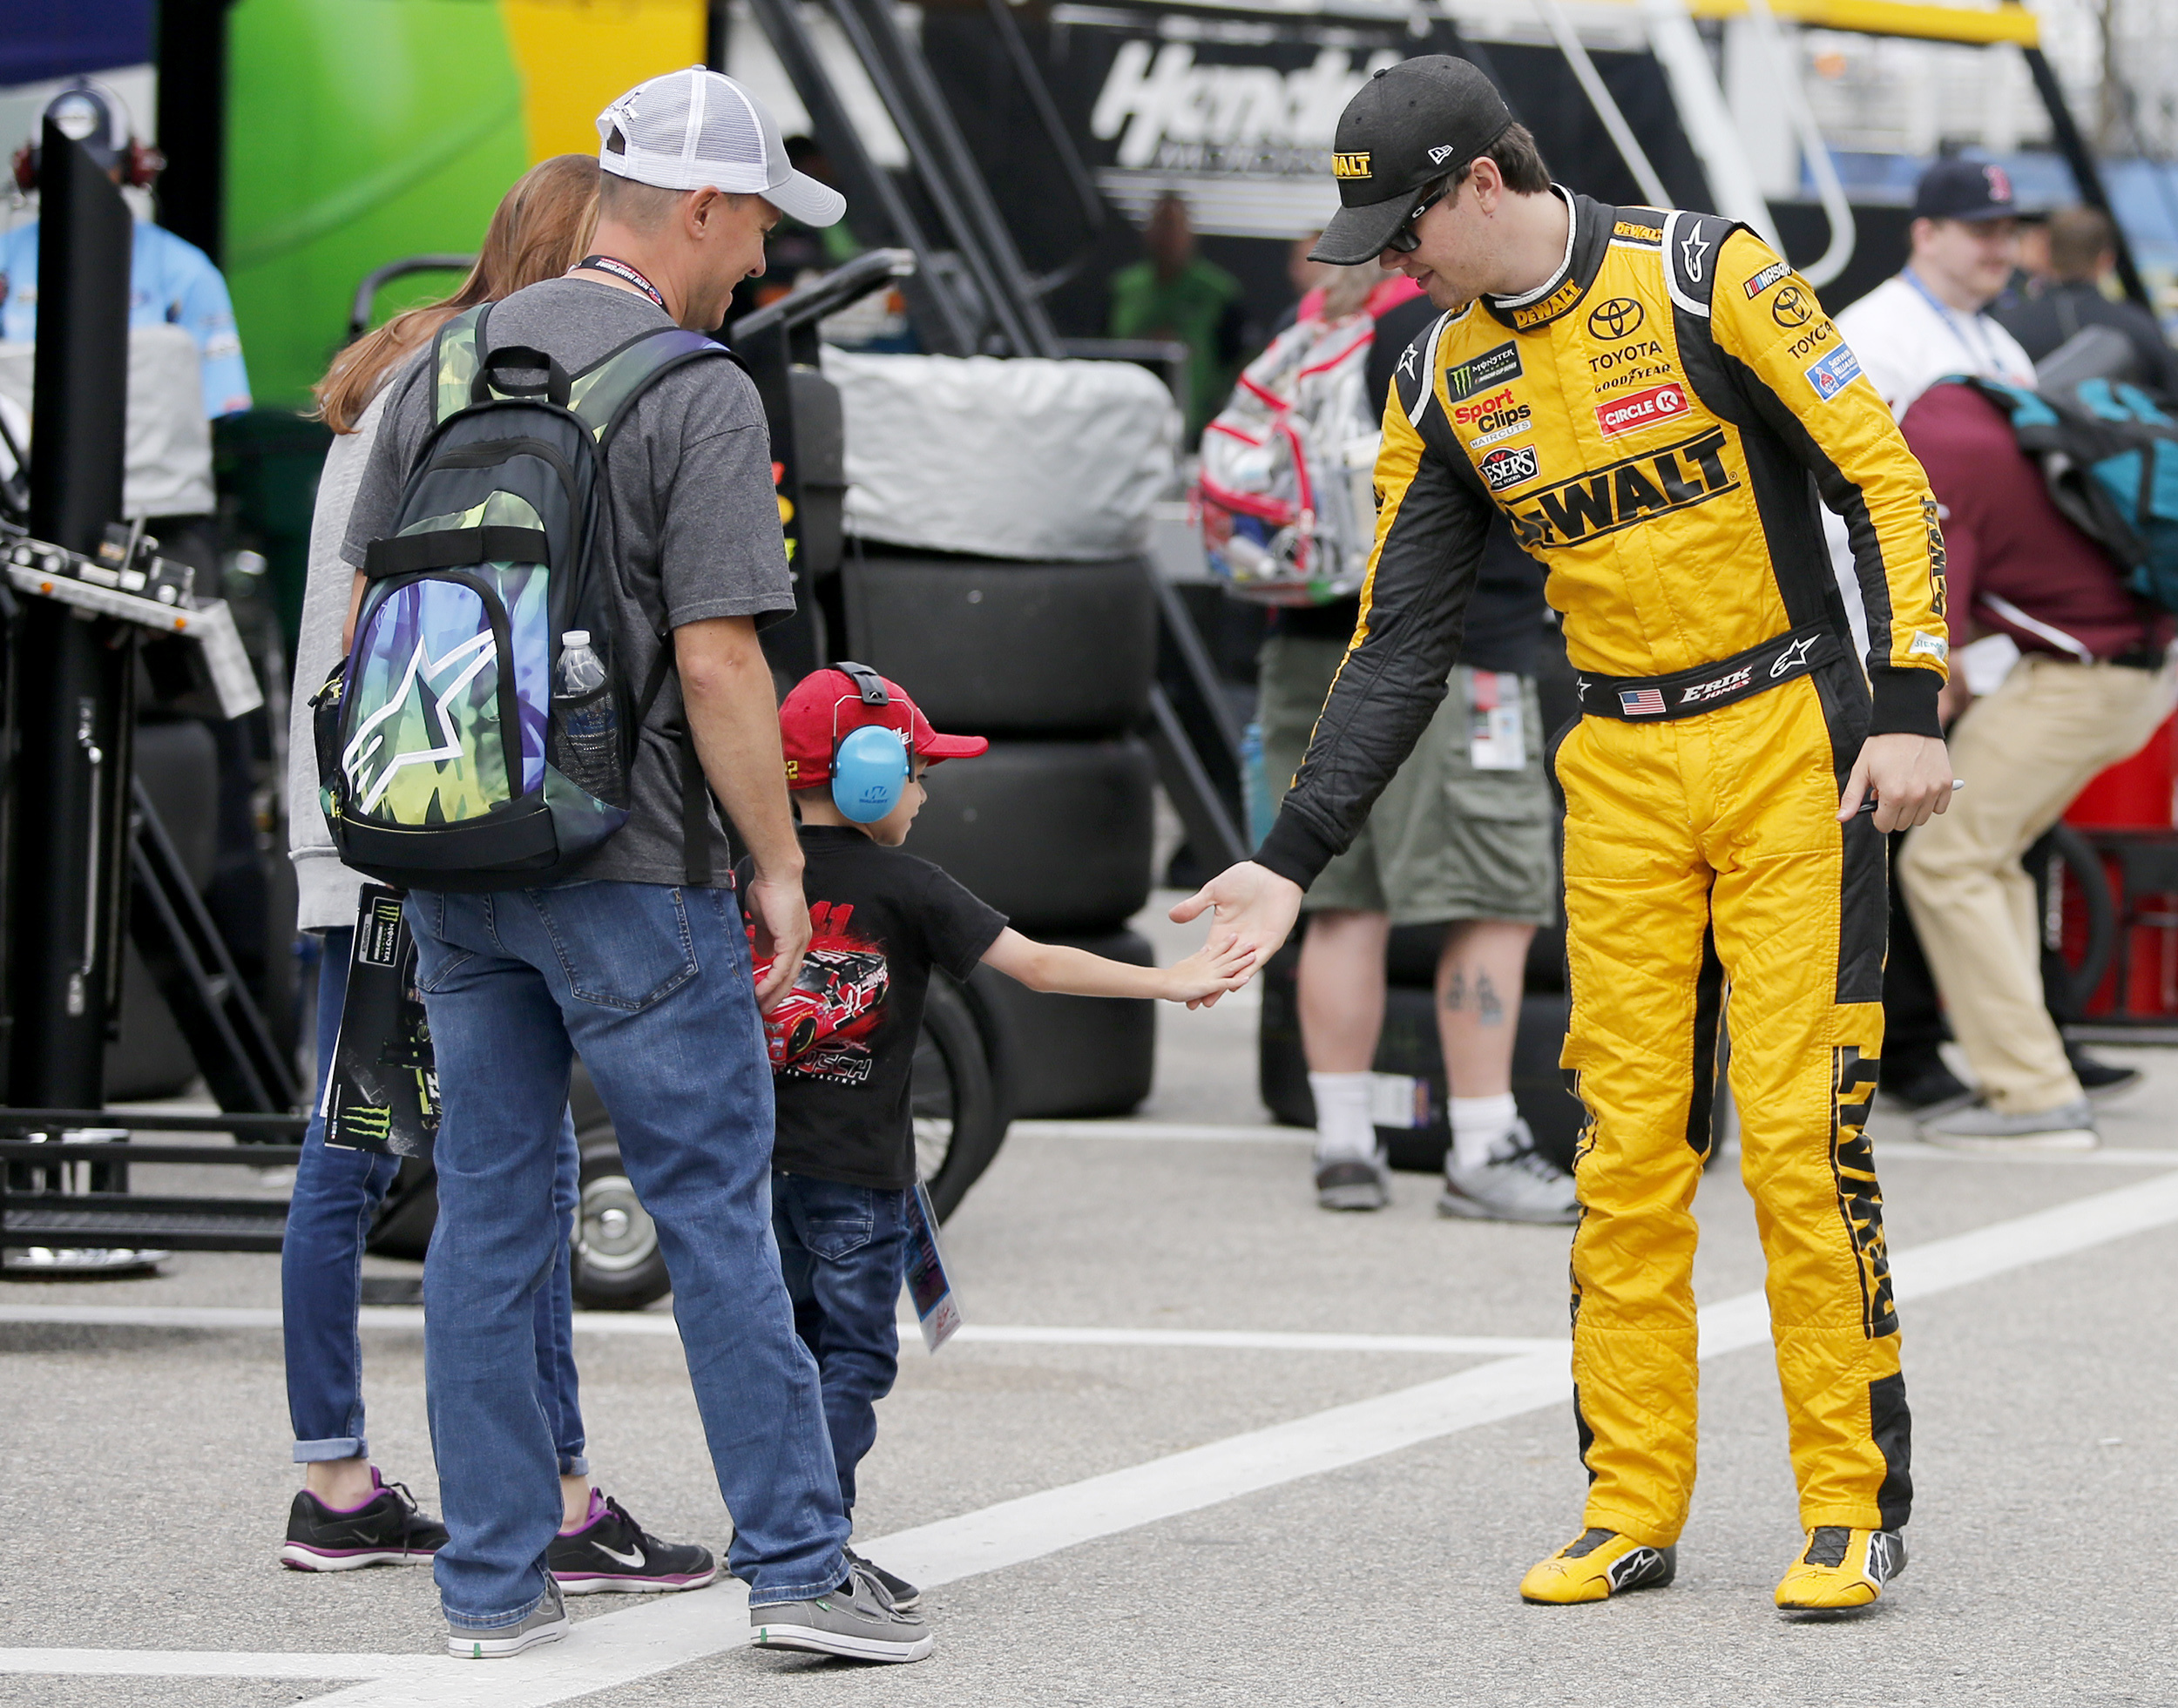 Erik Jones gets a high five from Jake Manalio, 4, of Middletown, N.Y., as he walks to his car at the start of practice for the NASCAR Cup Series auto race Saturday, July 21, 2018, at New Hampshire Motor Speedway in Loudon, N.H. (AP Photo/Mary Schwalm)